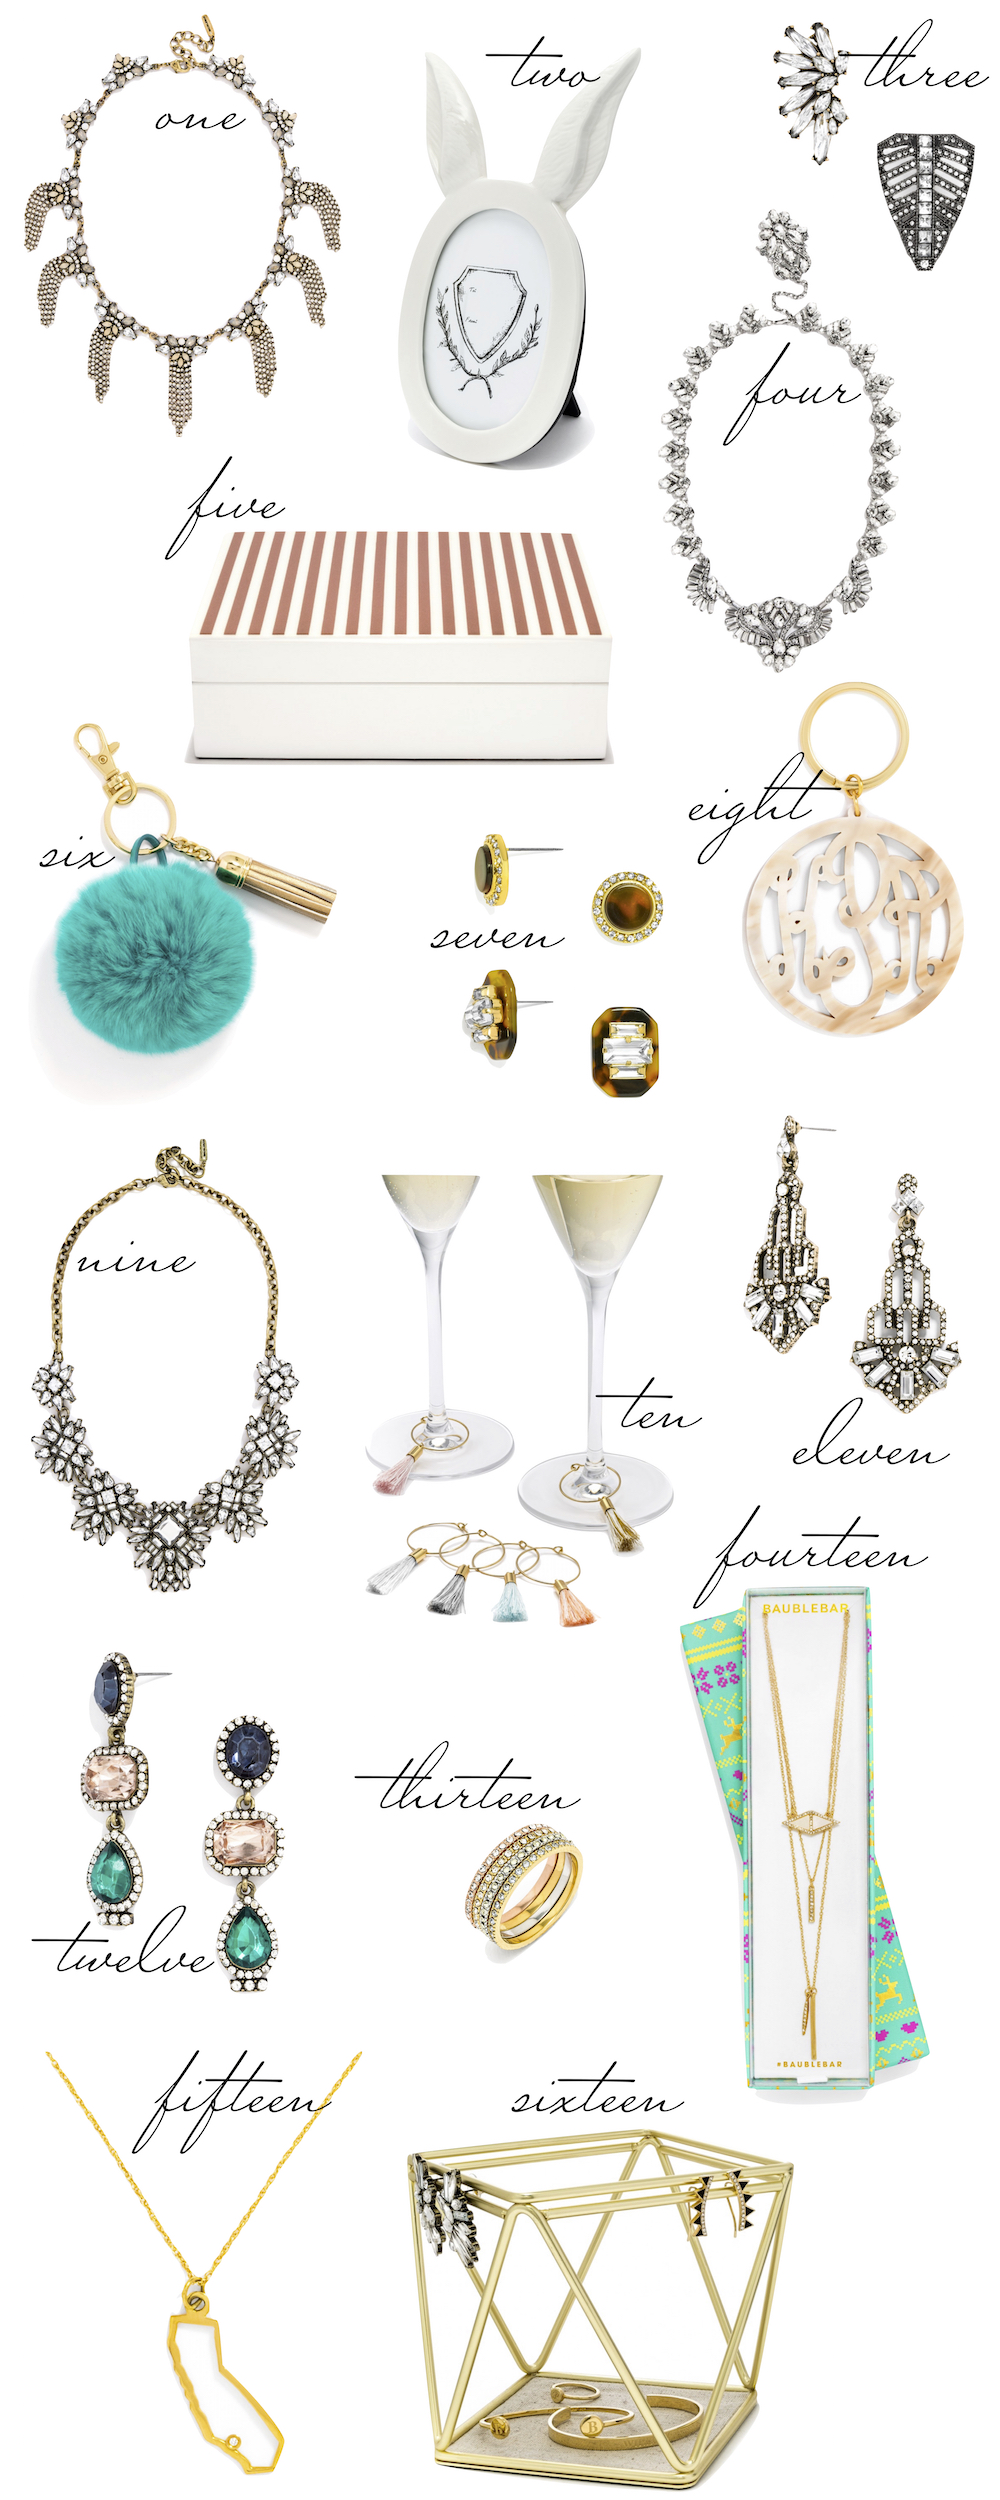 fb291b2e8d3582 BaubleBar Holiday Picks + $250 Giveaway! CLOSED - The Stripe